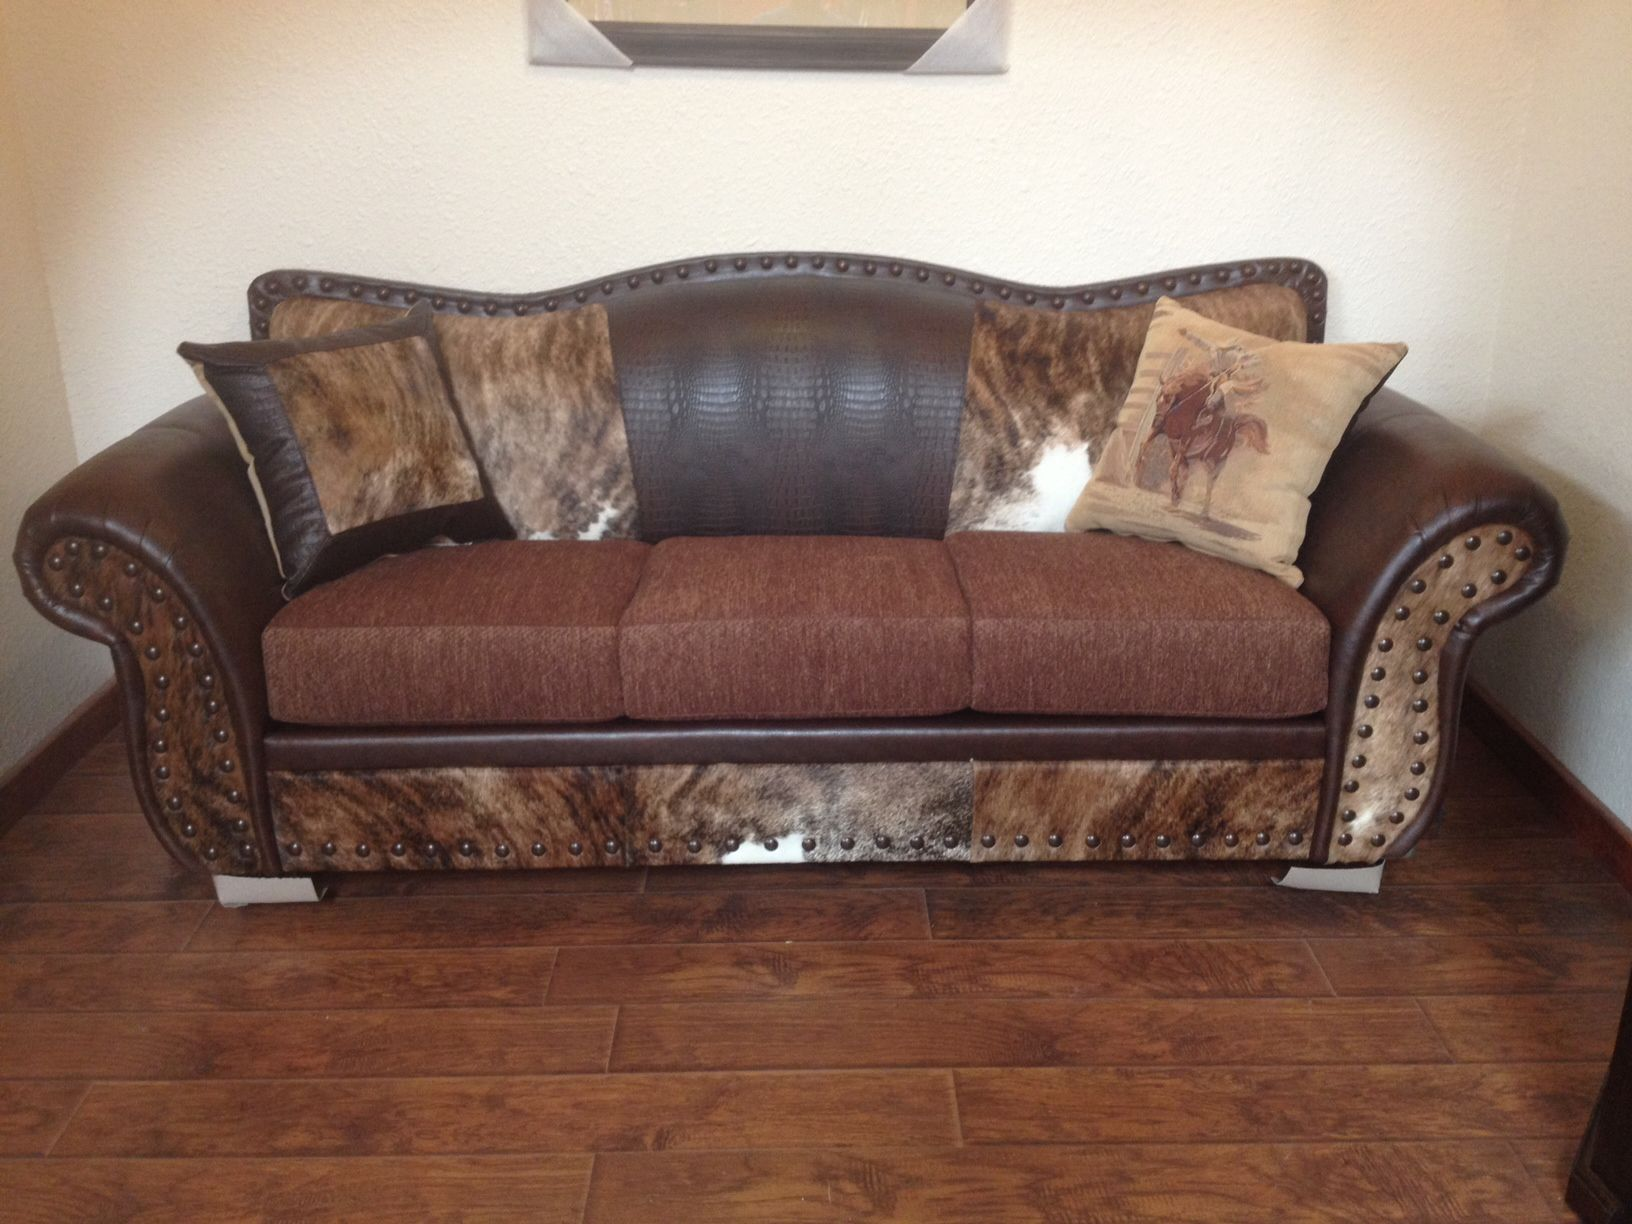 Quot Sofa Has Cowhide Bonded Leather And Fabric Cushions 94l